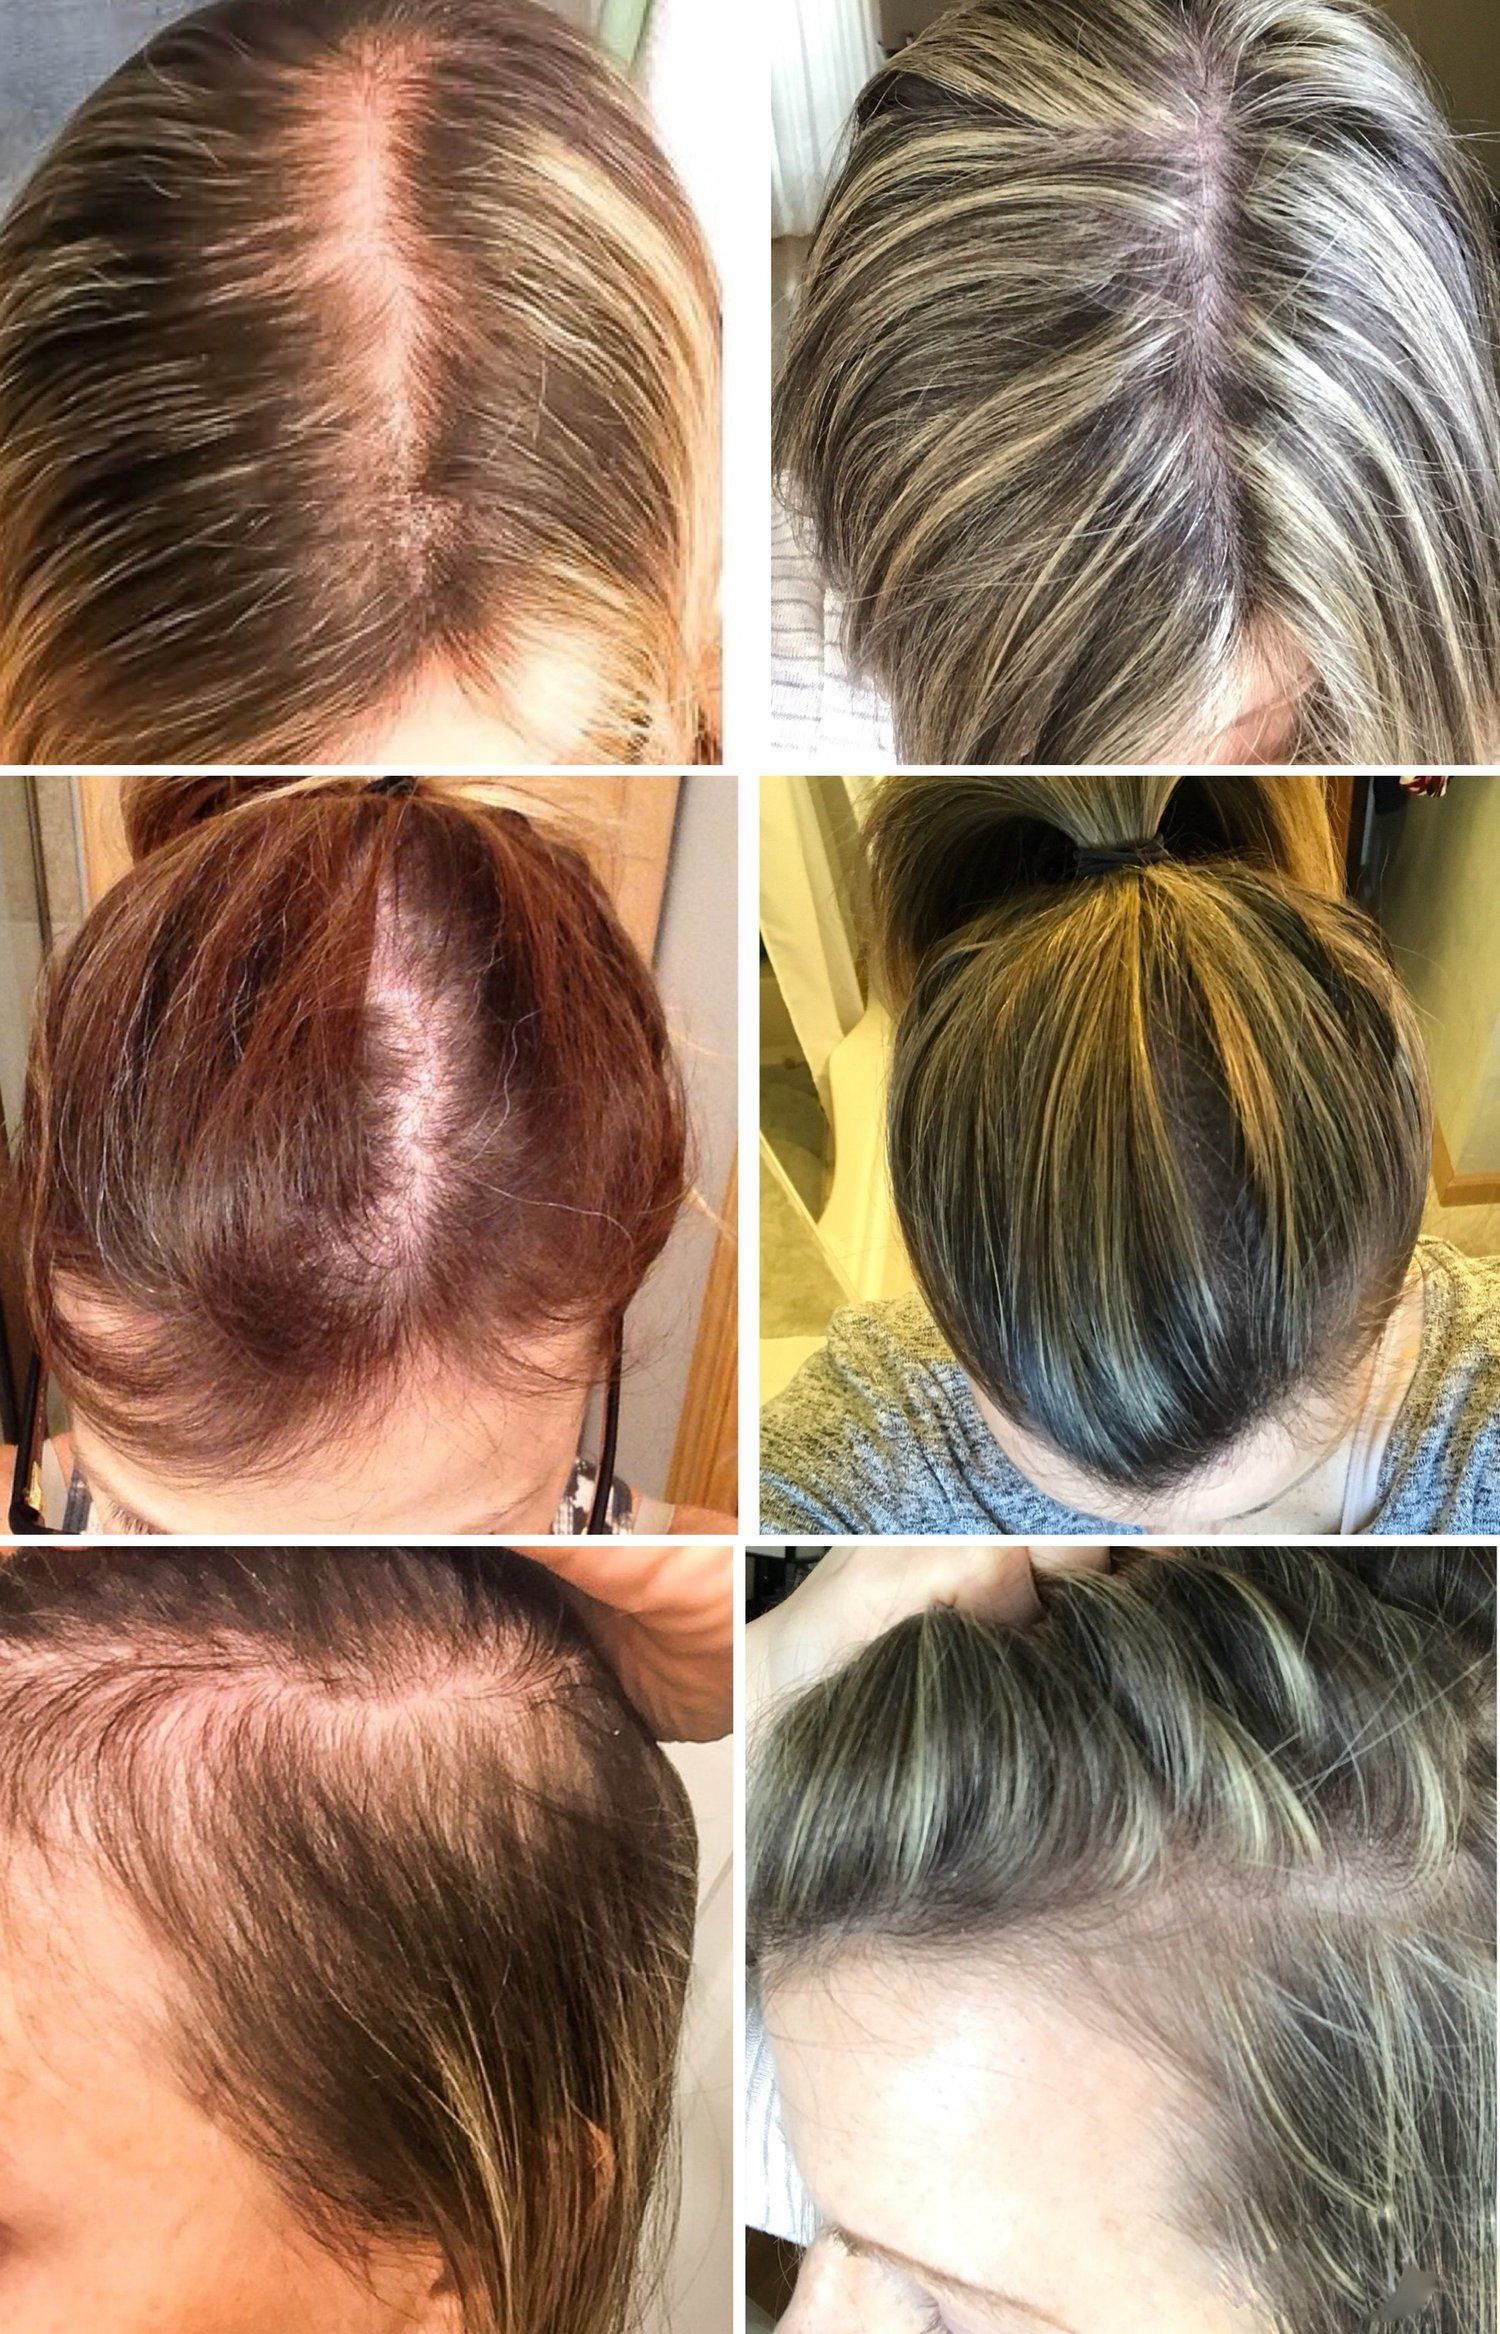 Women And Hair Loss Causes Solutions And Support First Thyme Mom Thick Hair Remedies Hair Loss Remedies Women Pcos Hair Loss